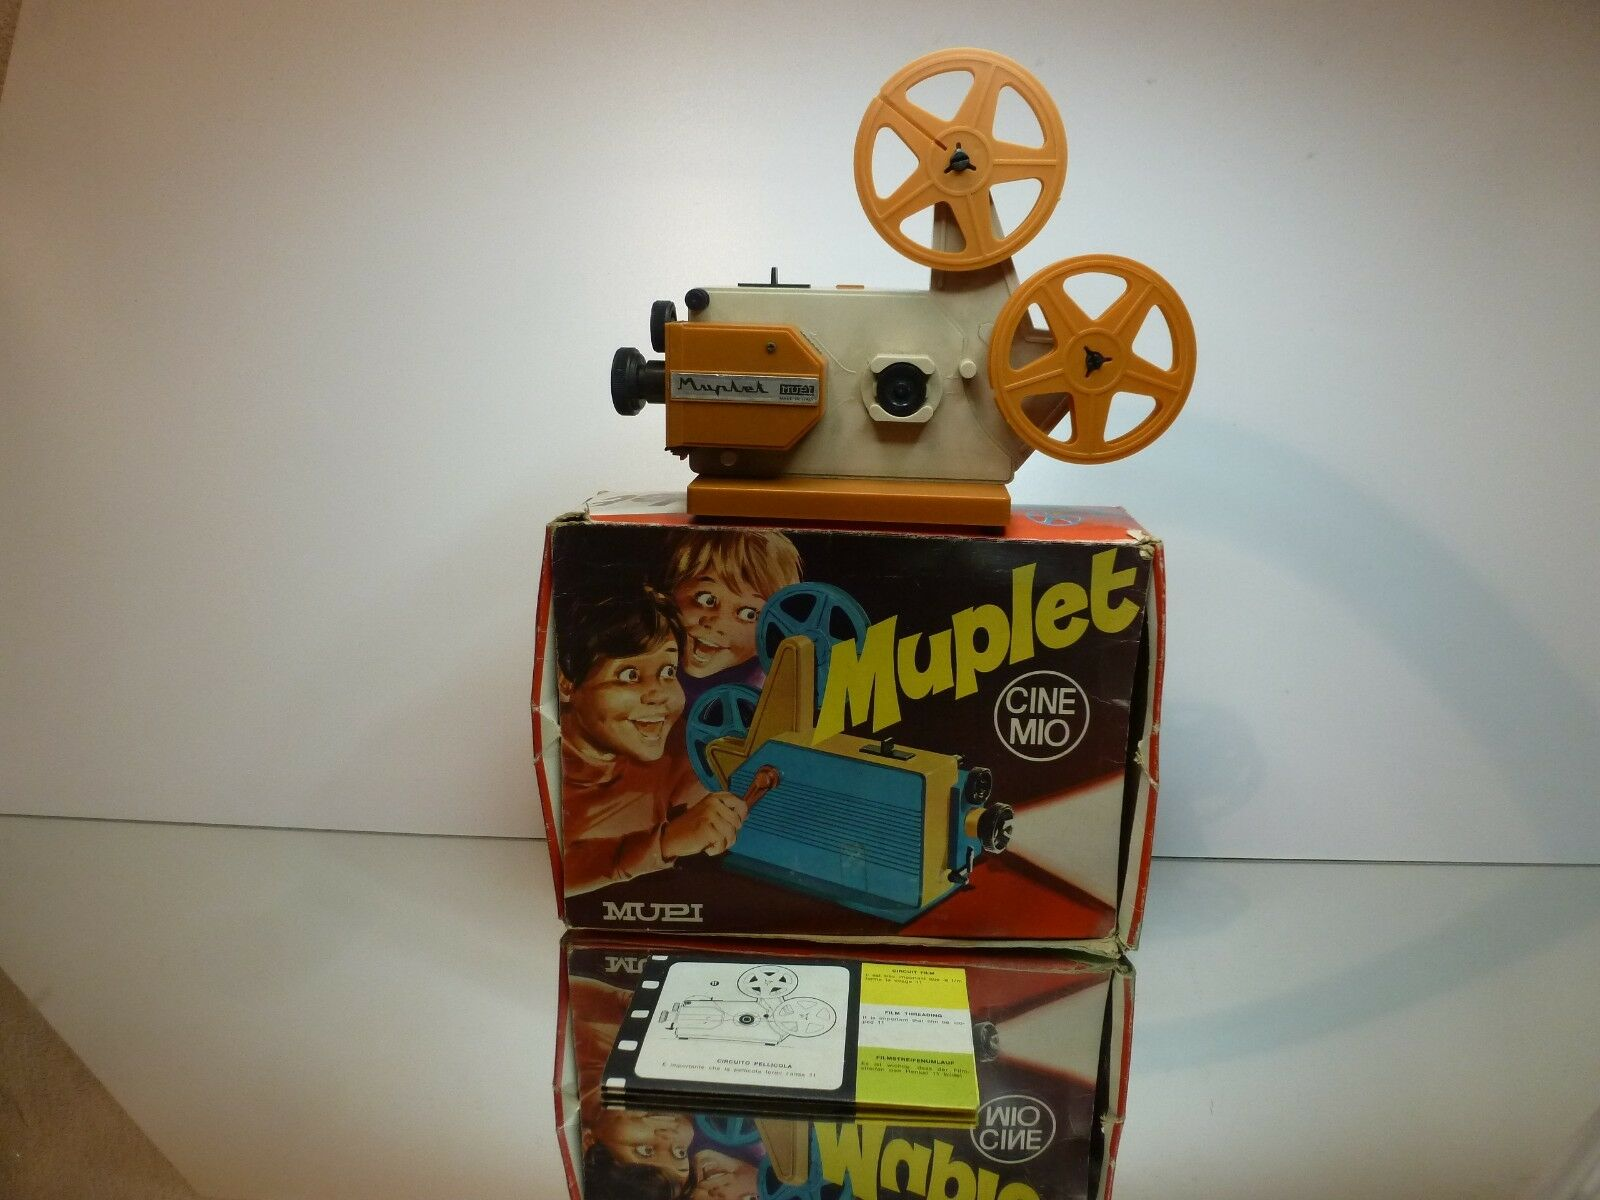 VINTAGE MUPI ITALIA 2021 MUPLET CINEMIO FILM PROJECTOR - GOOD IN BOX